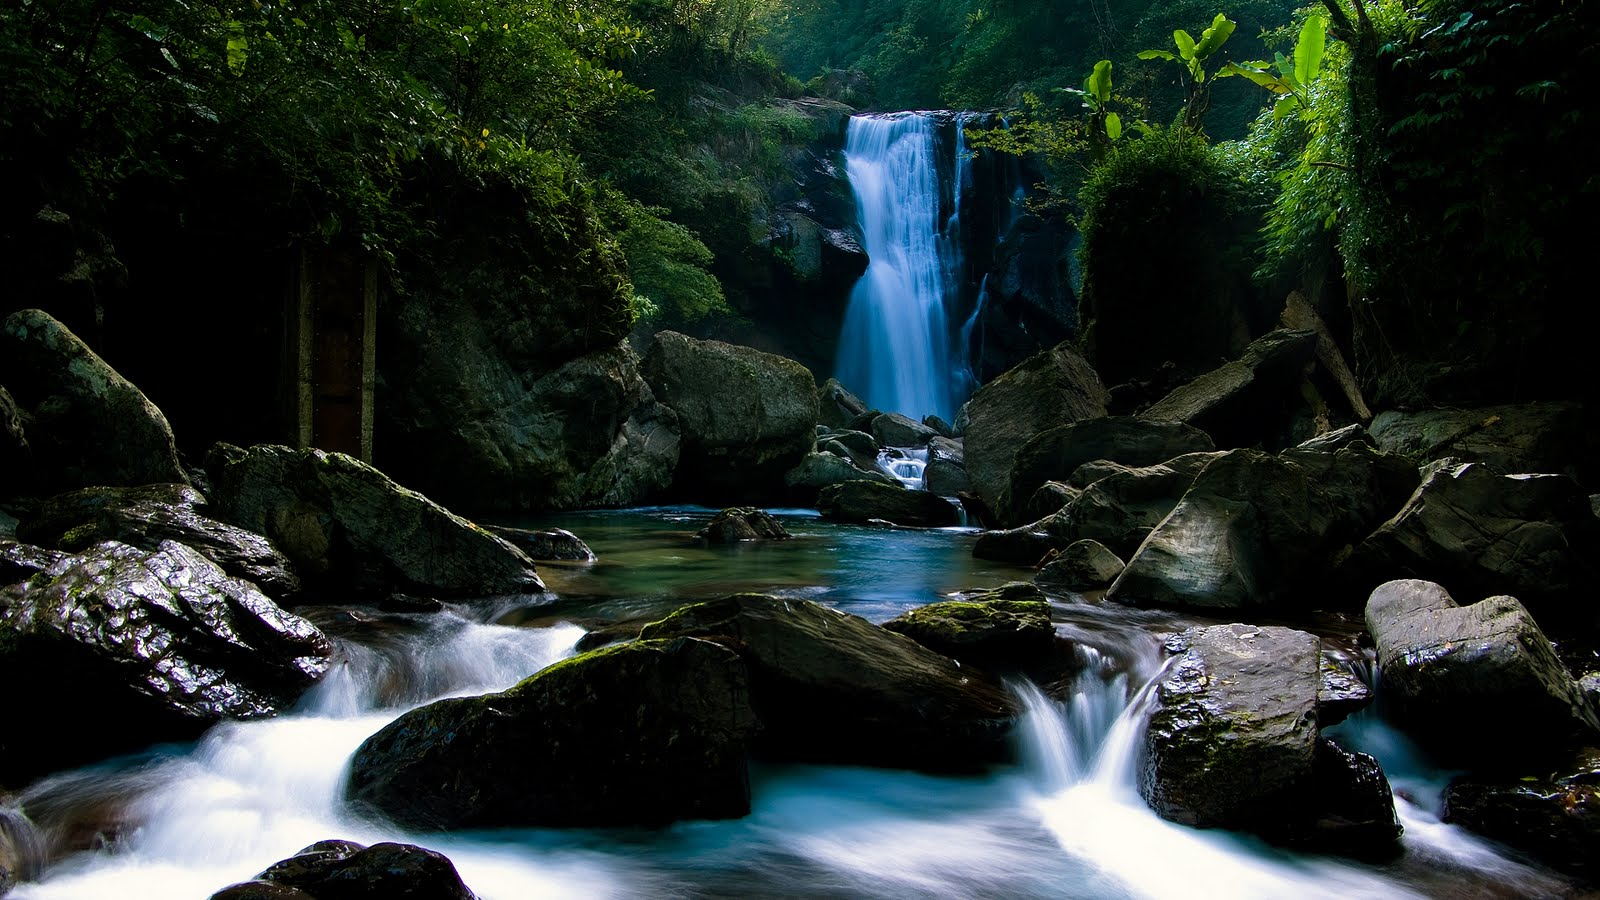 new wallpaper 2011 High Resolution Widescreen Nature Wallpapers 1600x900